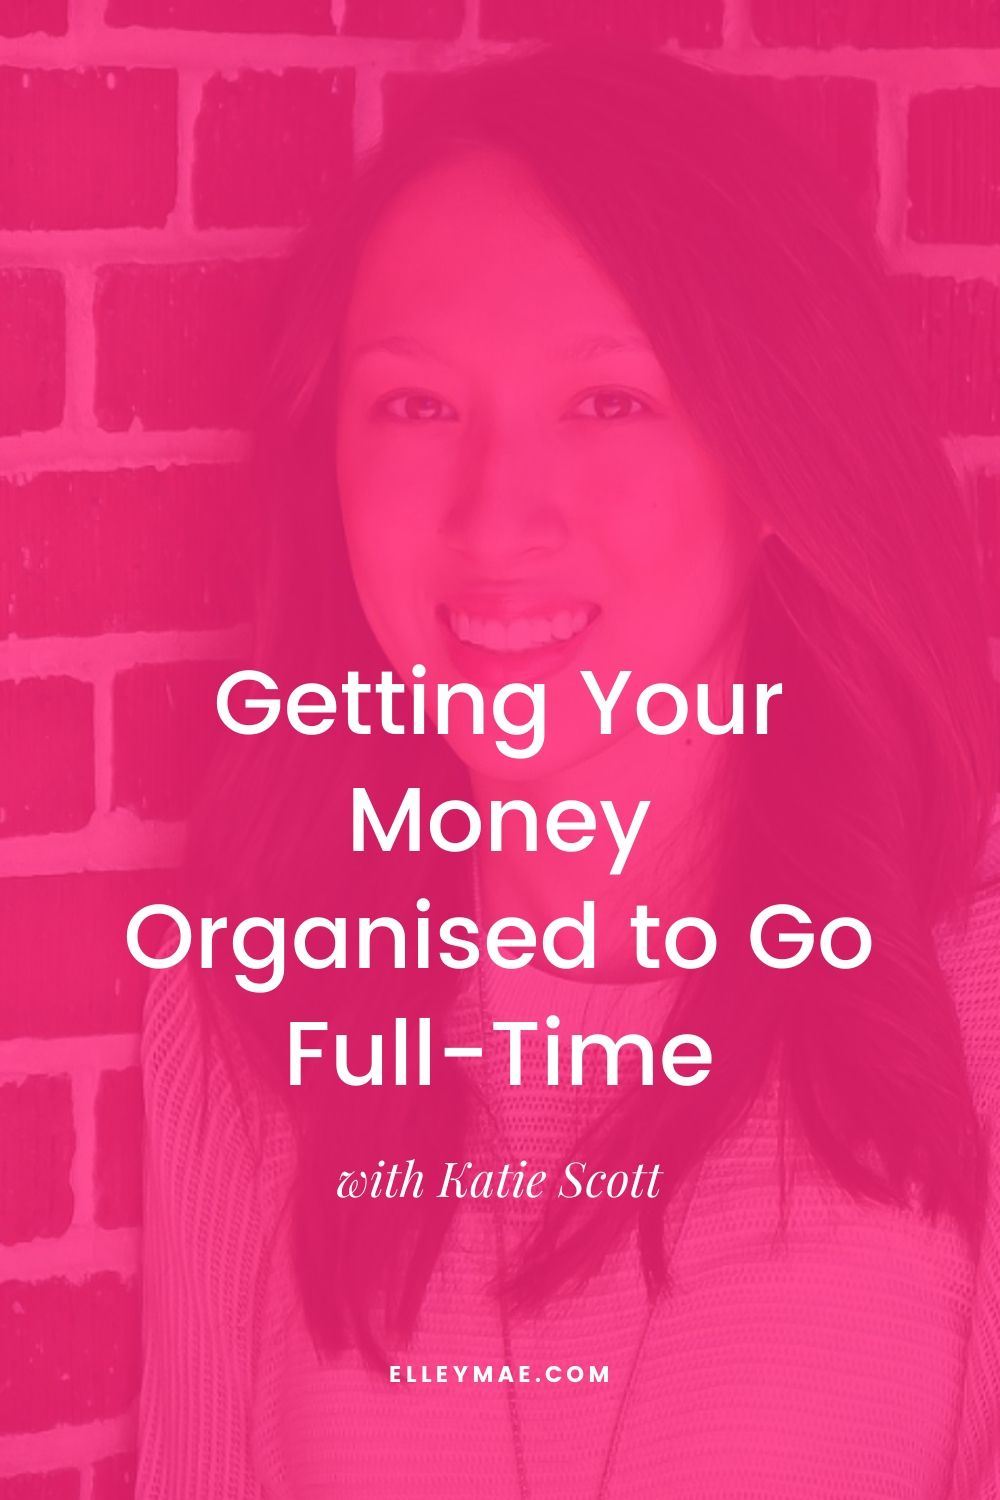 Getting Your Money Organised to Go Full-Time